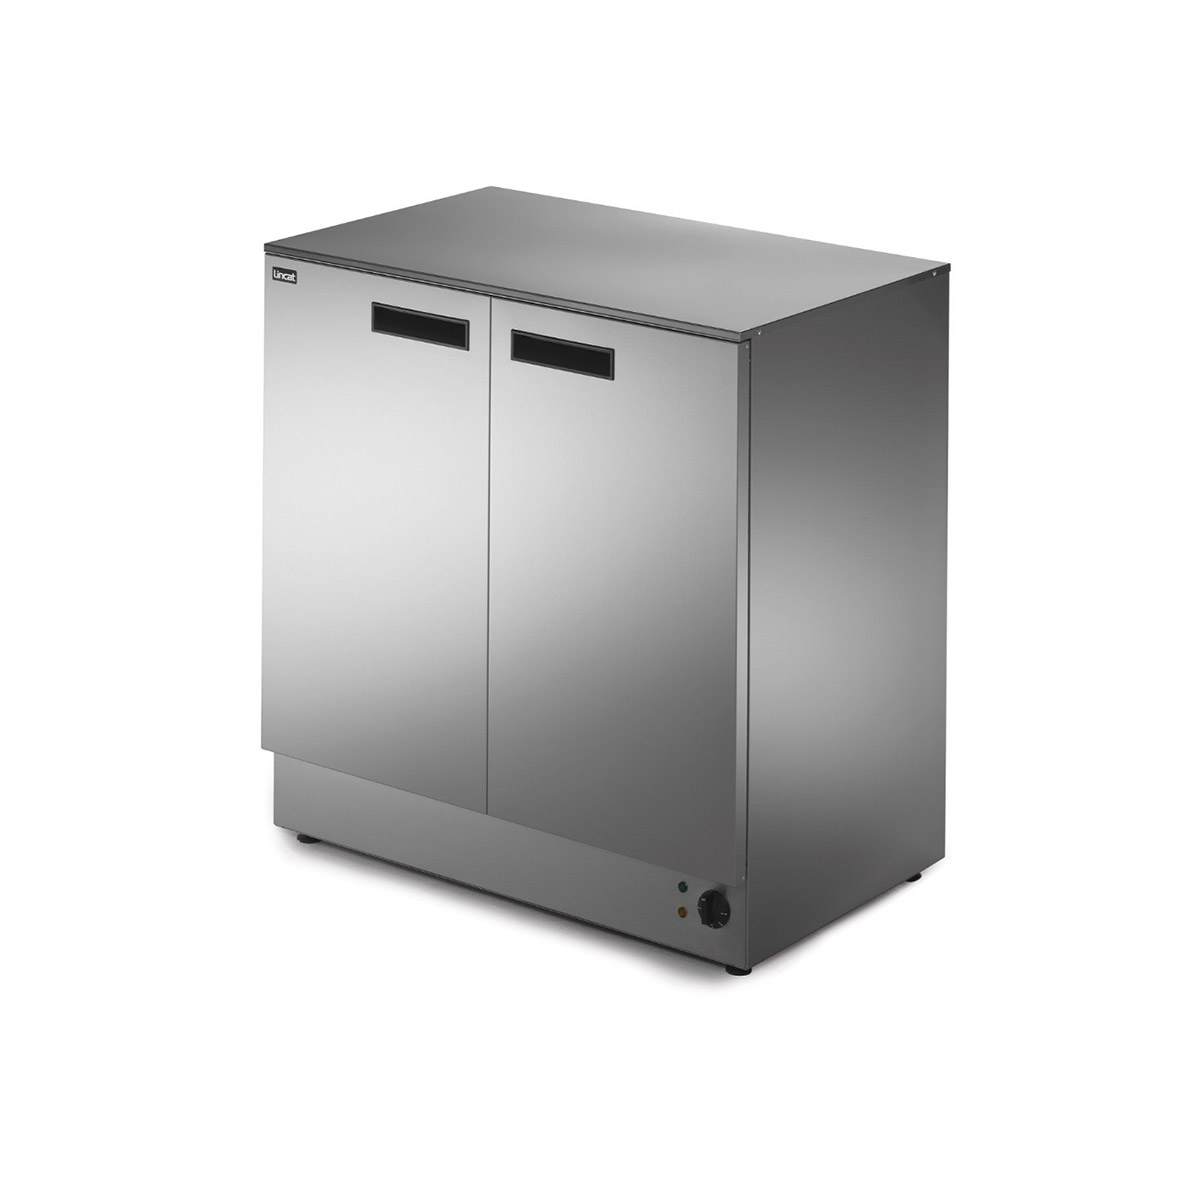 PLH90 - Lincat Panther Light Duty Series Free-standing Hot Cupboard - Static - W 900 mm - 2.0 kW